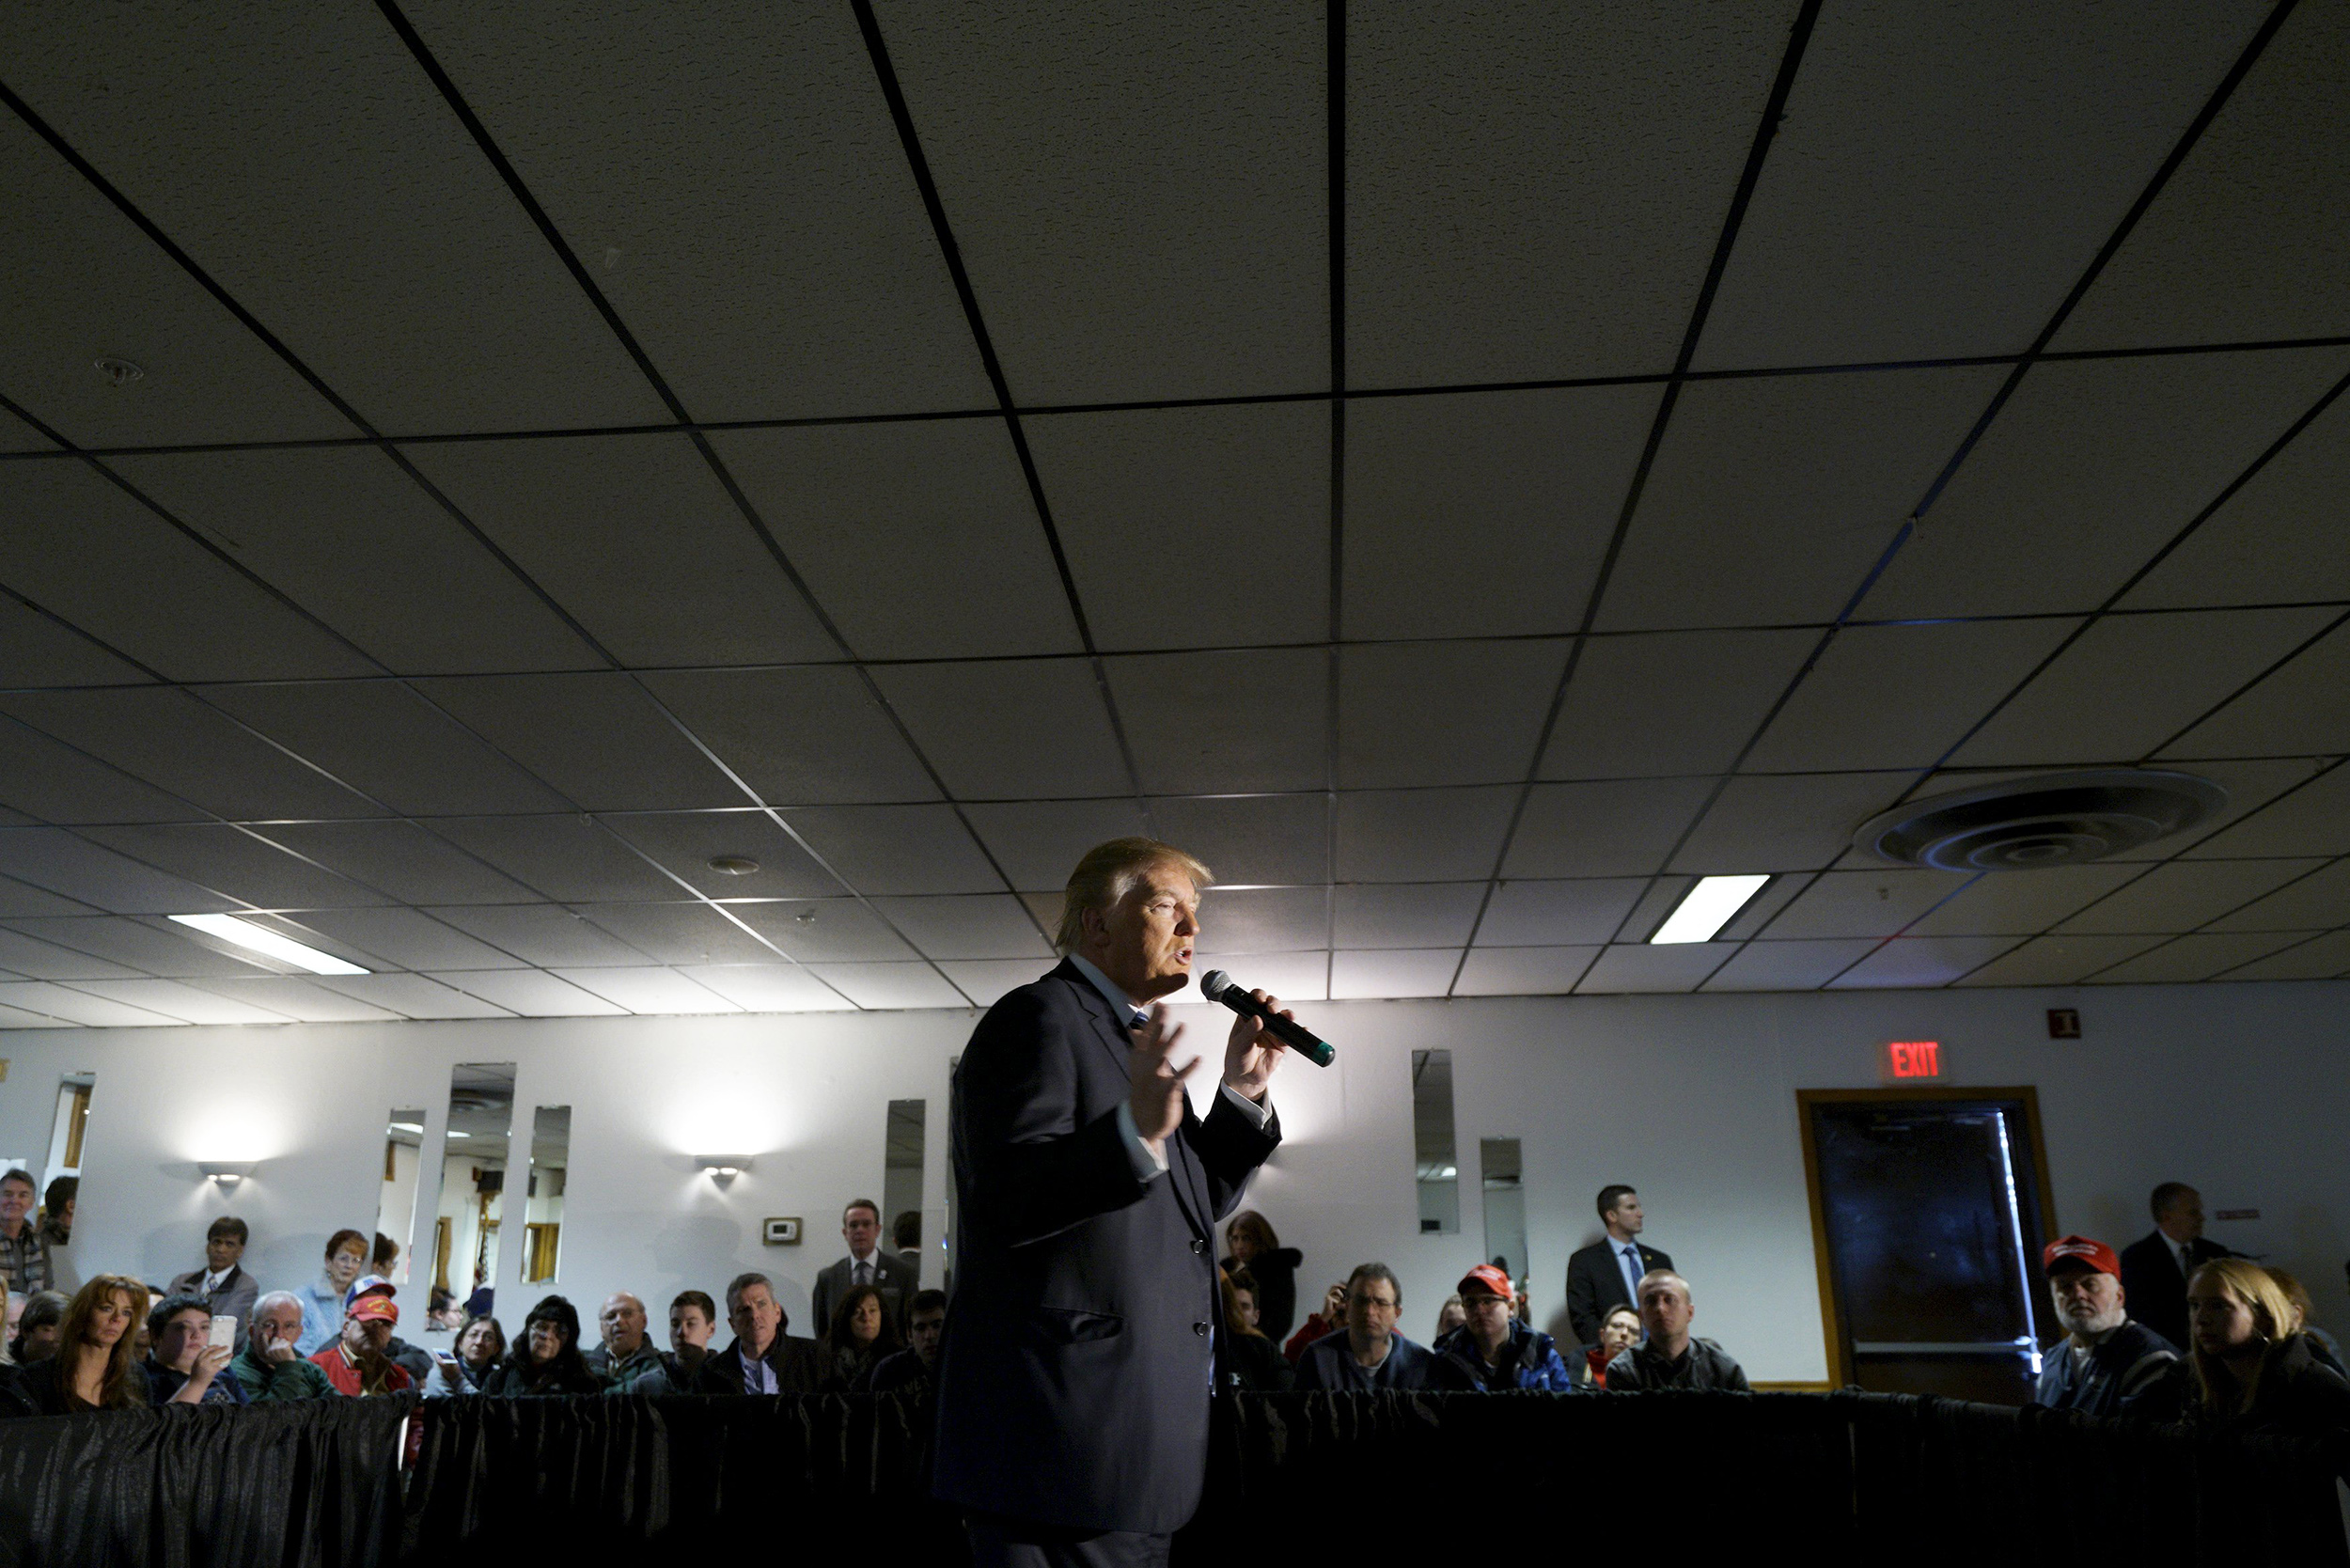 Republican presidential candidate Donald Trump speaks at an Elks Lodge in Salem, NH on Feb. 8, 2016.